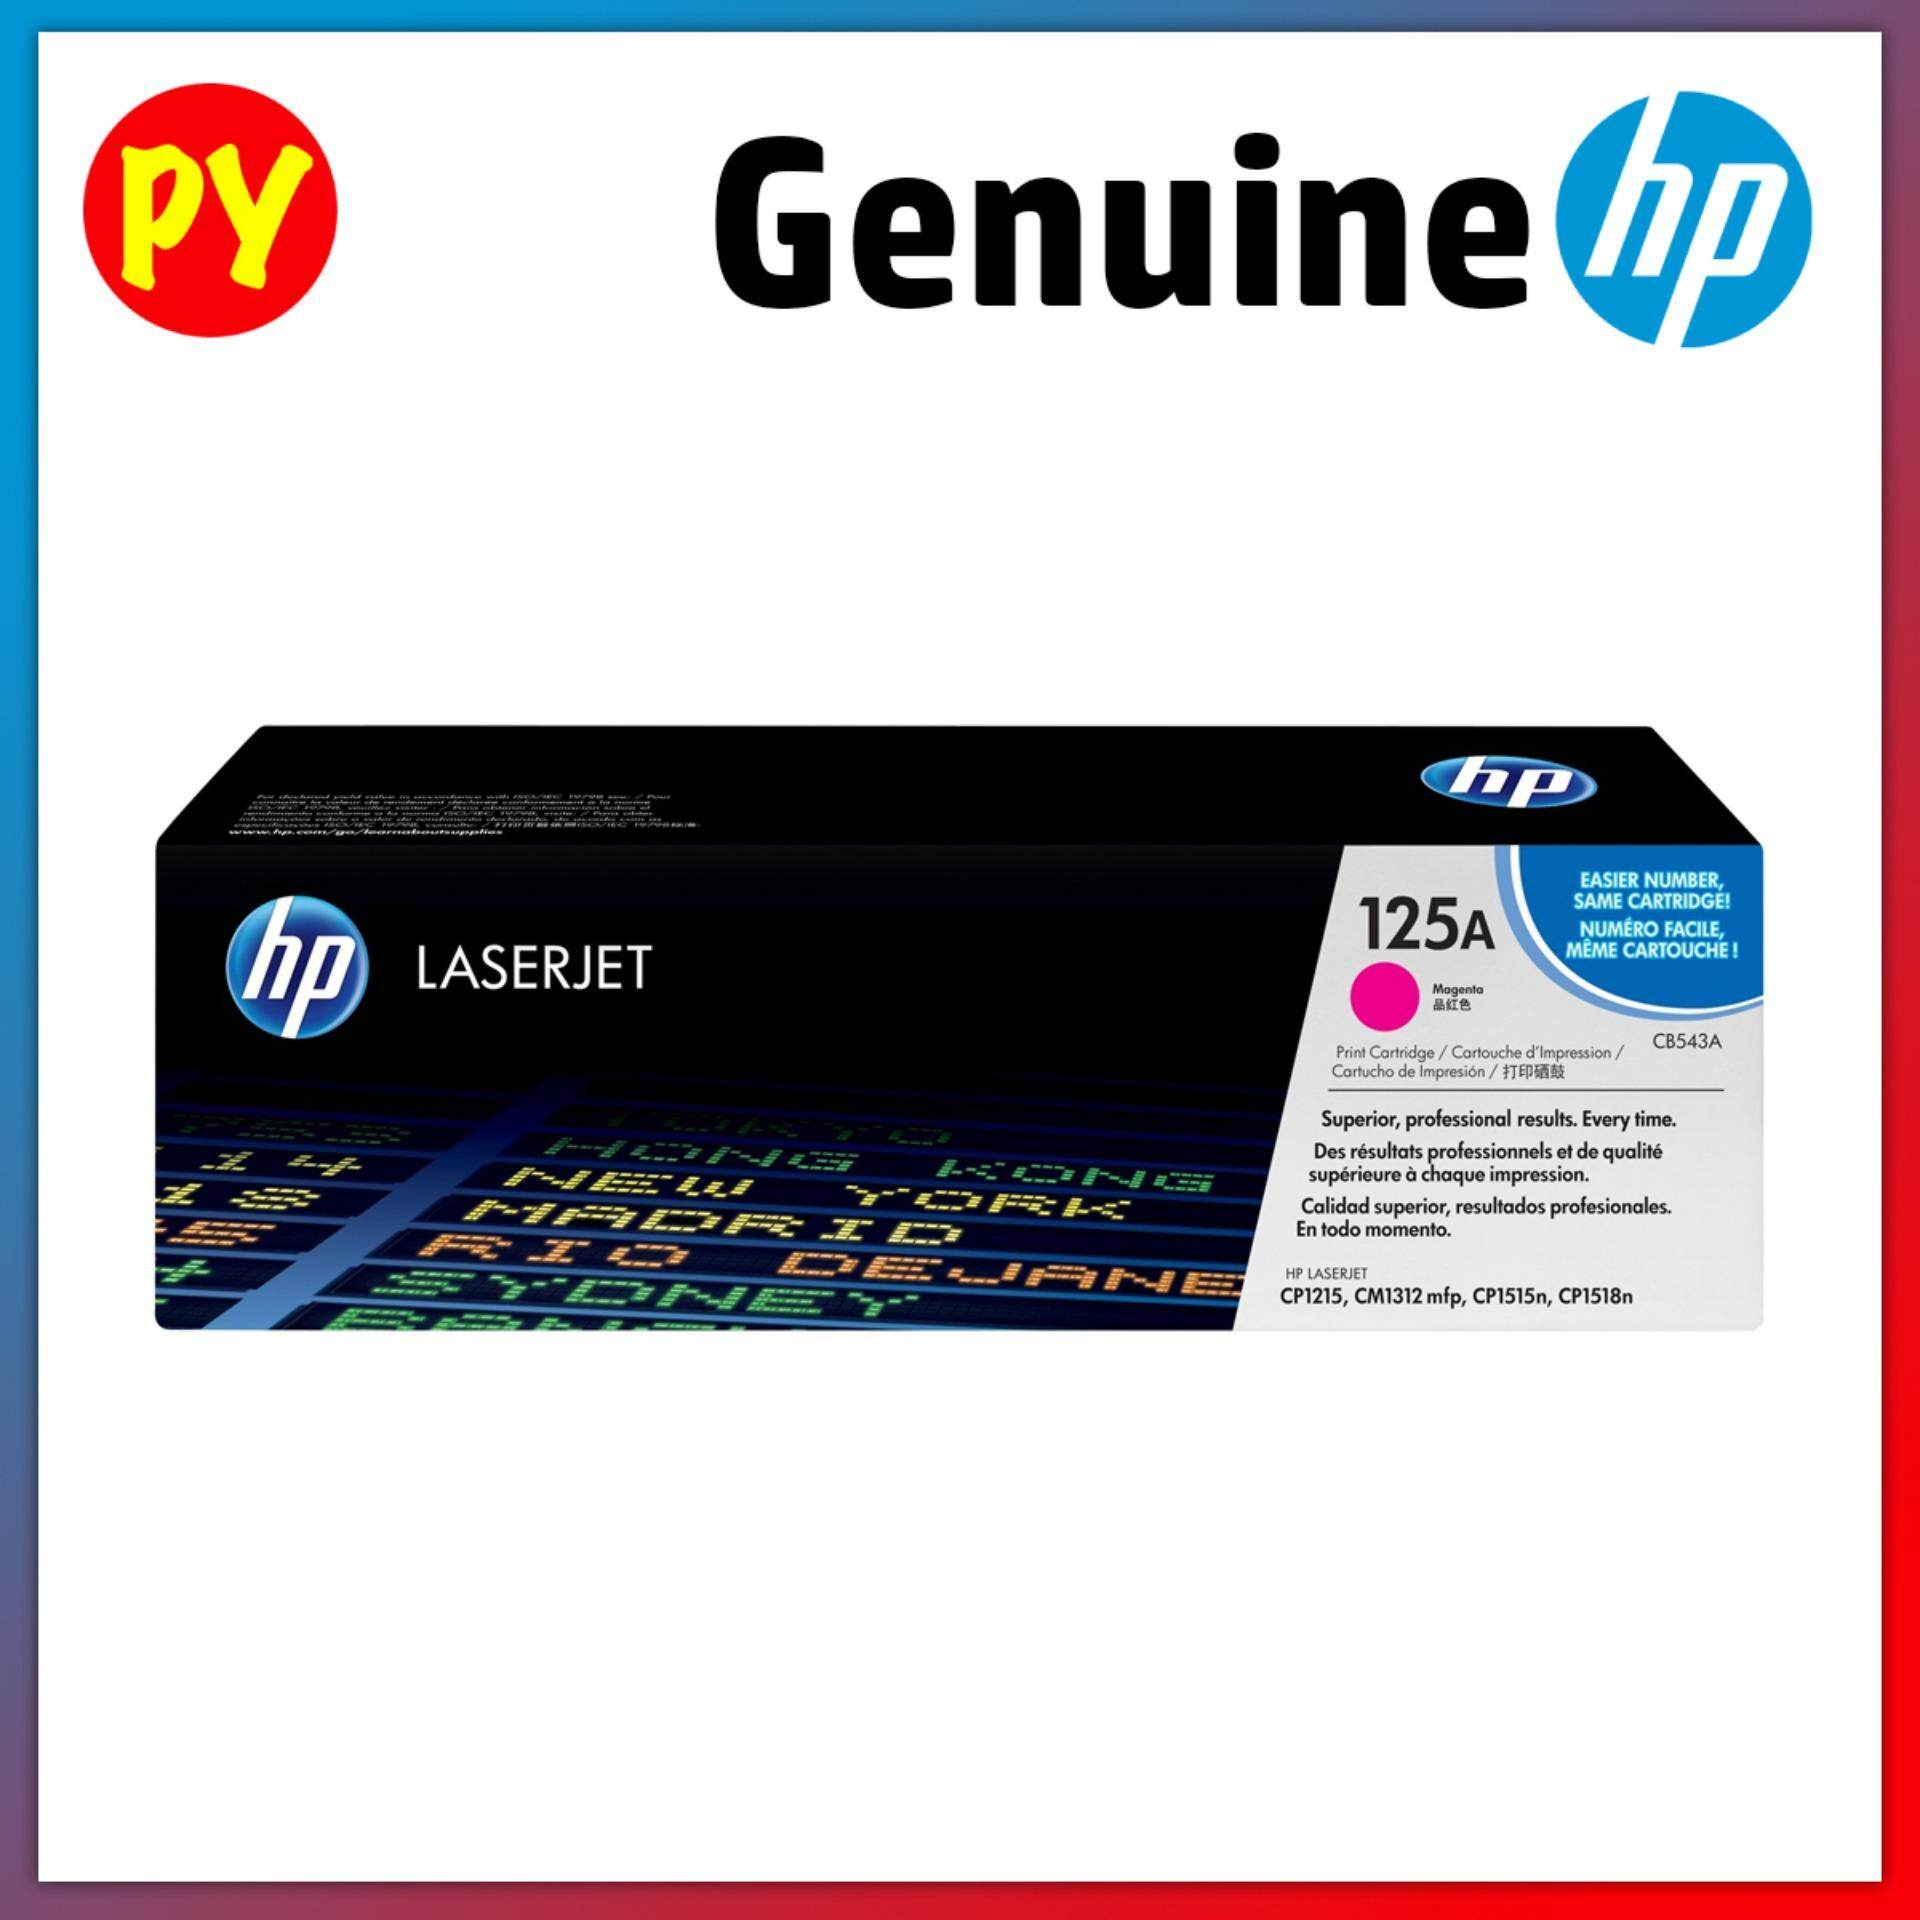 Hp Color Laserjet Cb543A Magenta Print Cartridge(Cb543A)